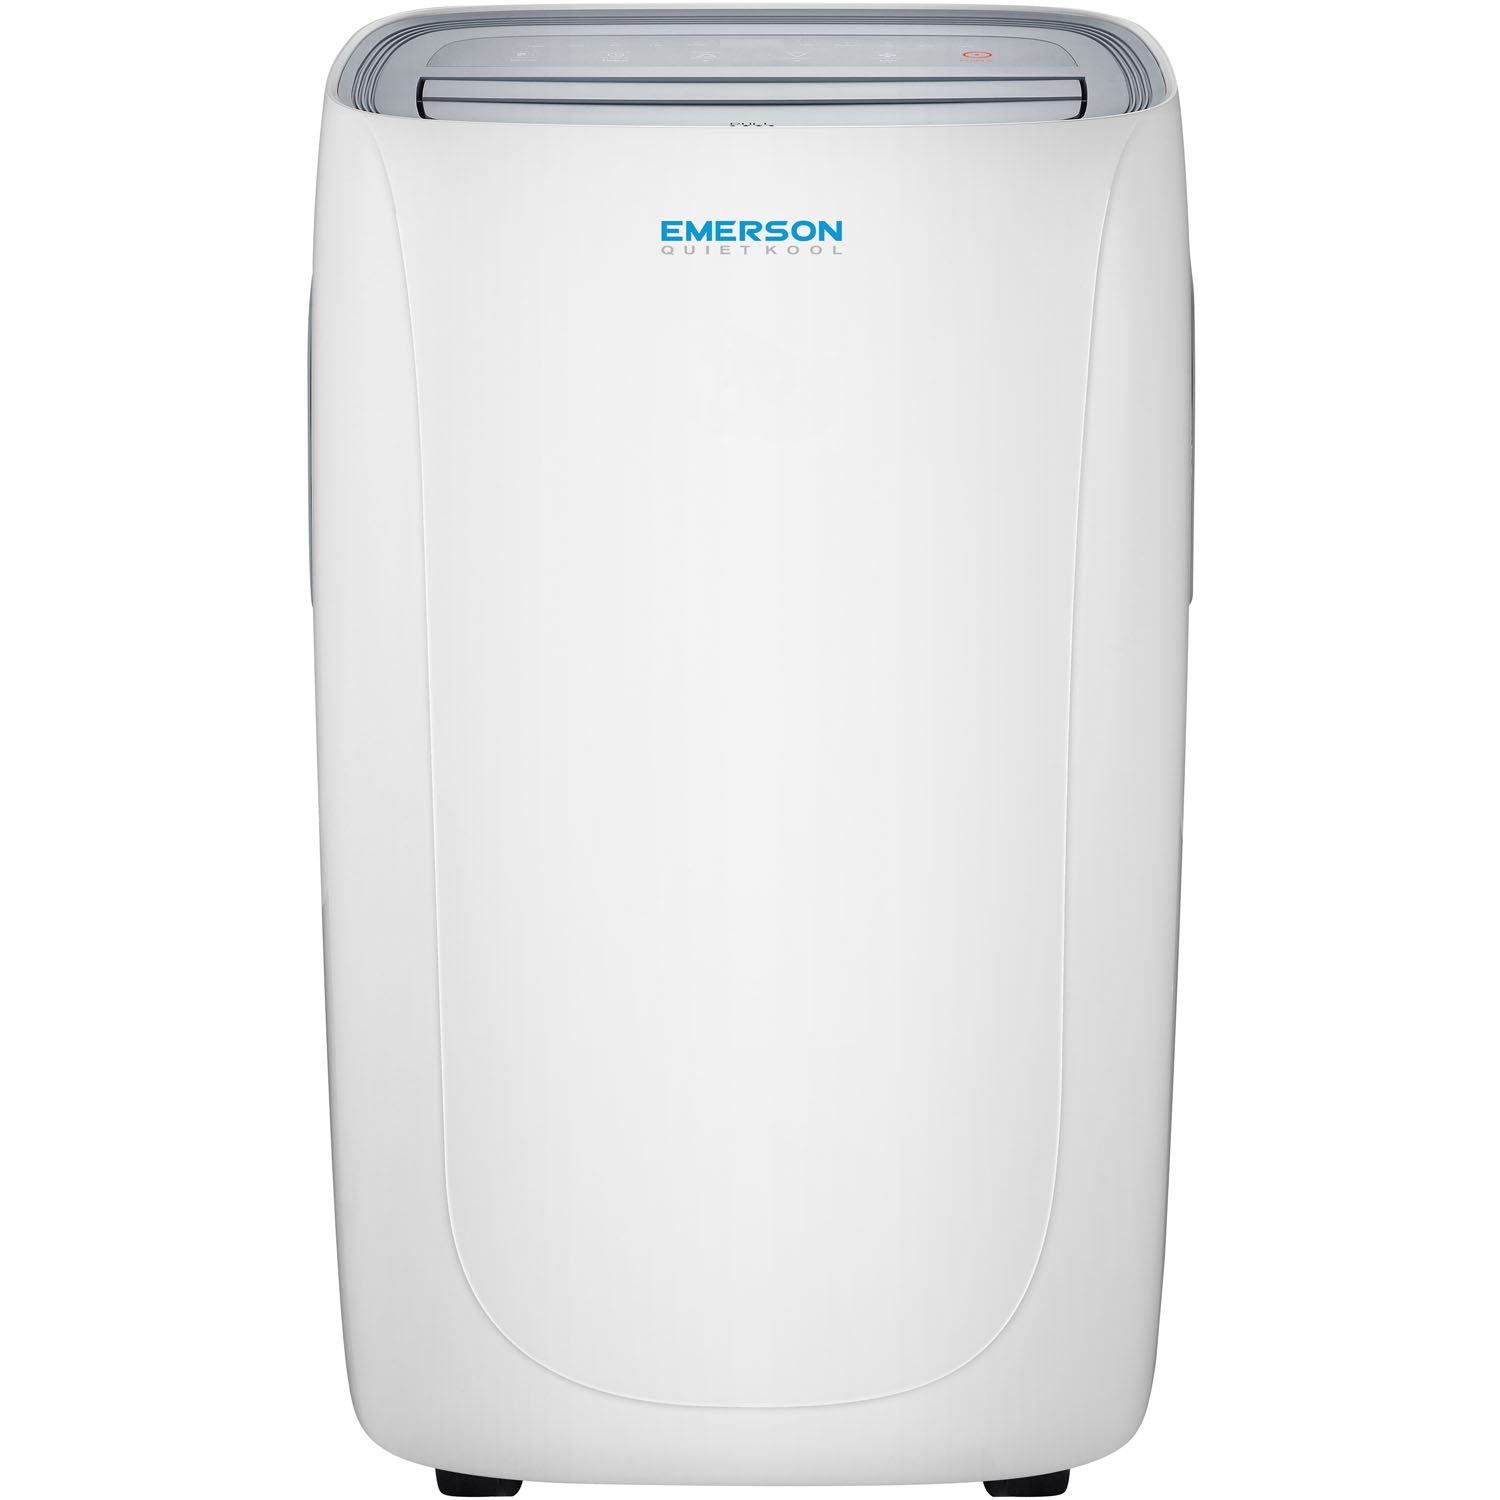 Emerson Quiet Kool EAPC10RD1 Portable Air Conditioner with Remote Control for Rooms up to 200-Sq. Ft.